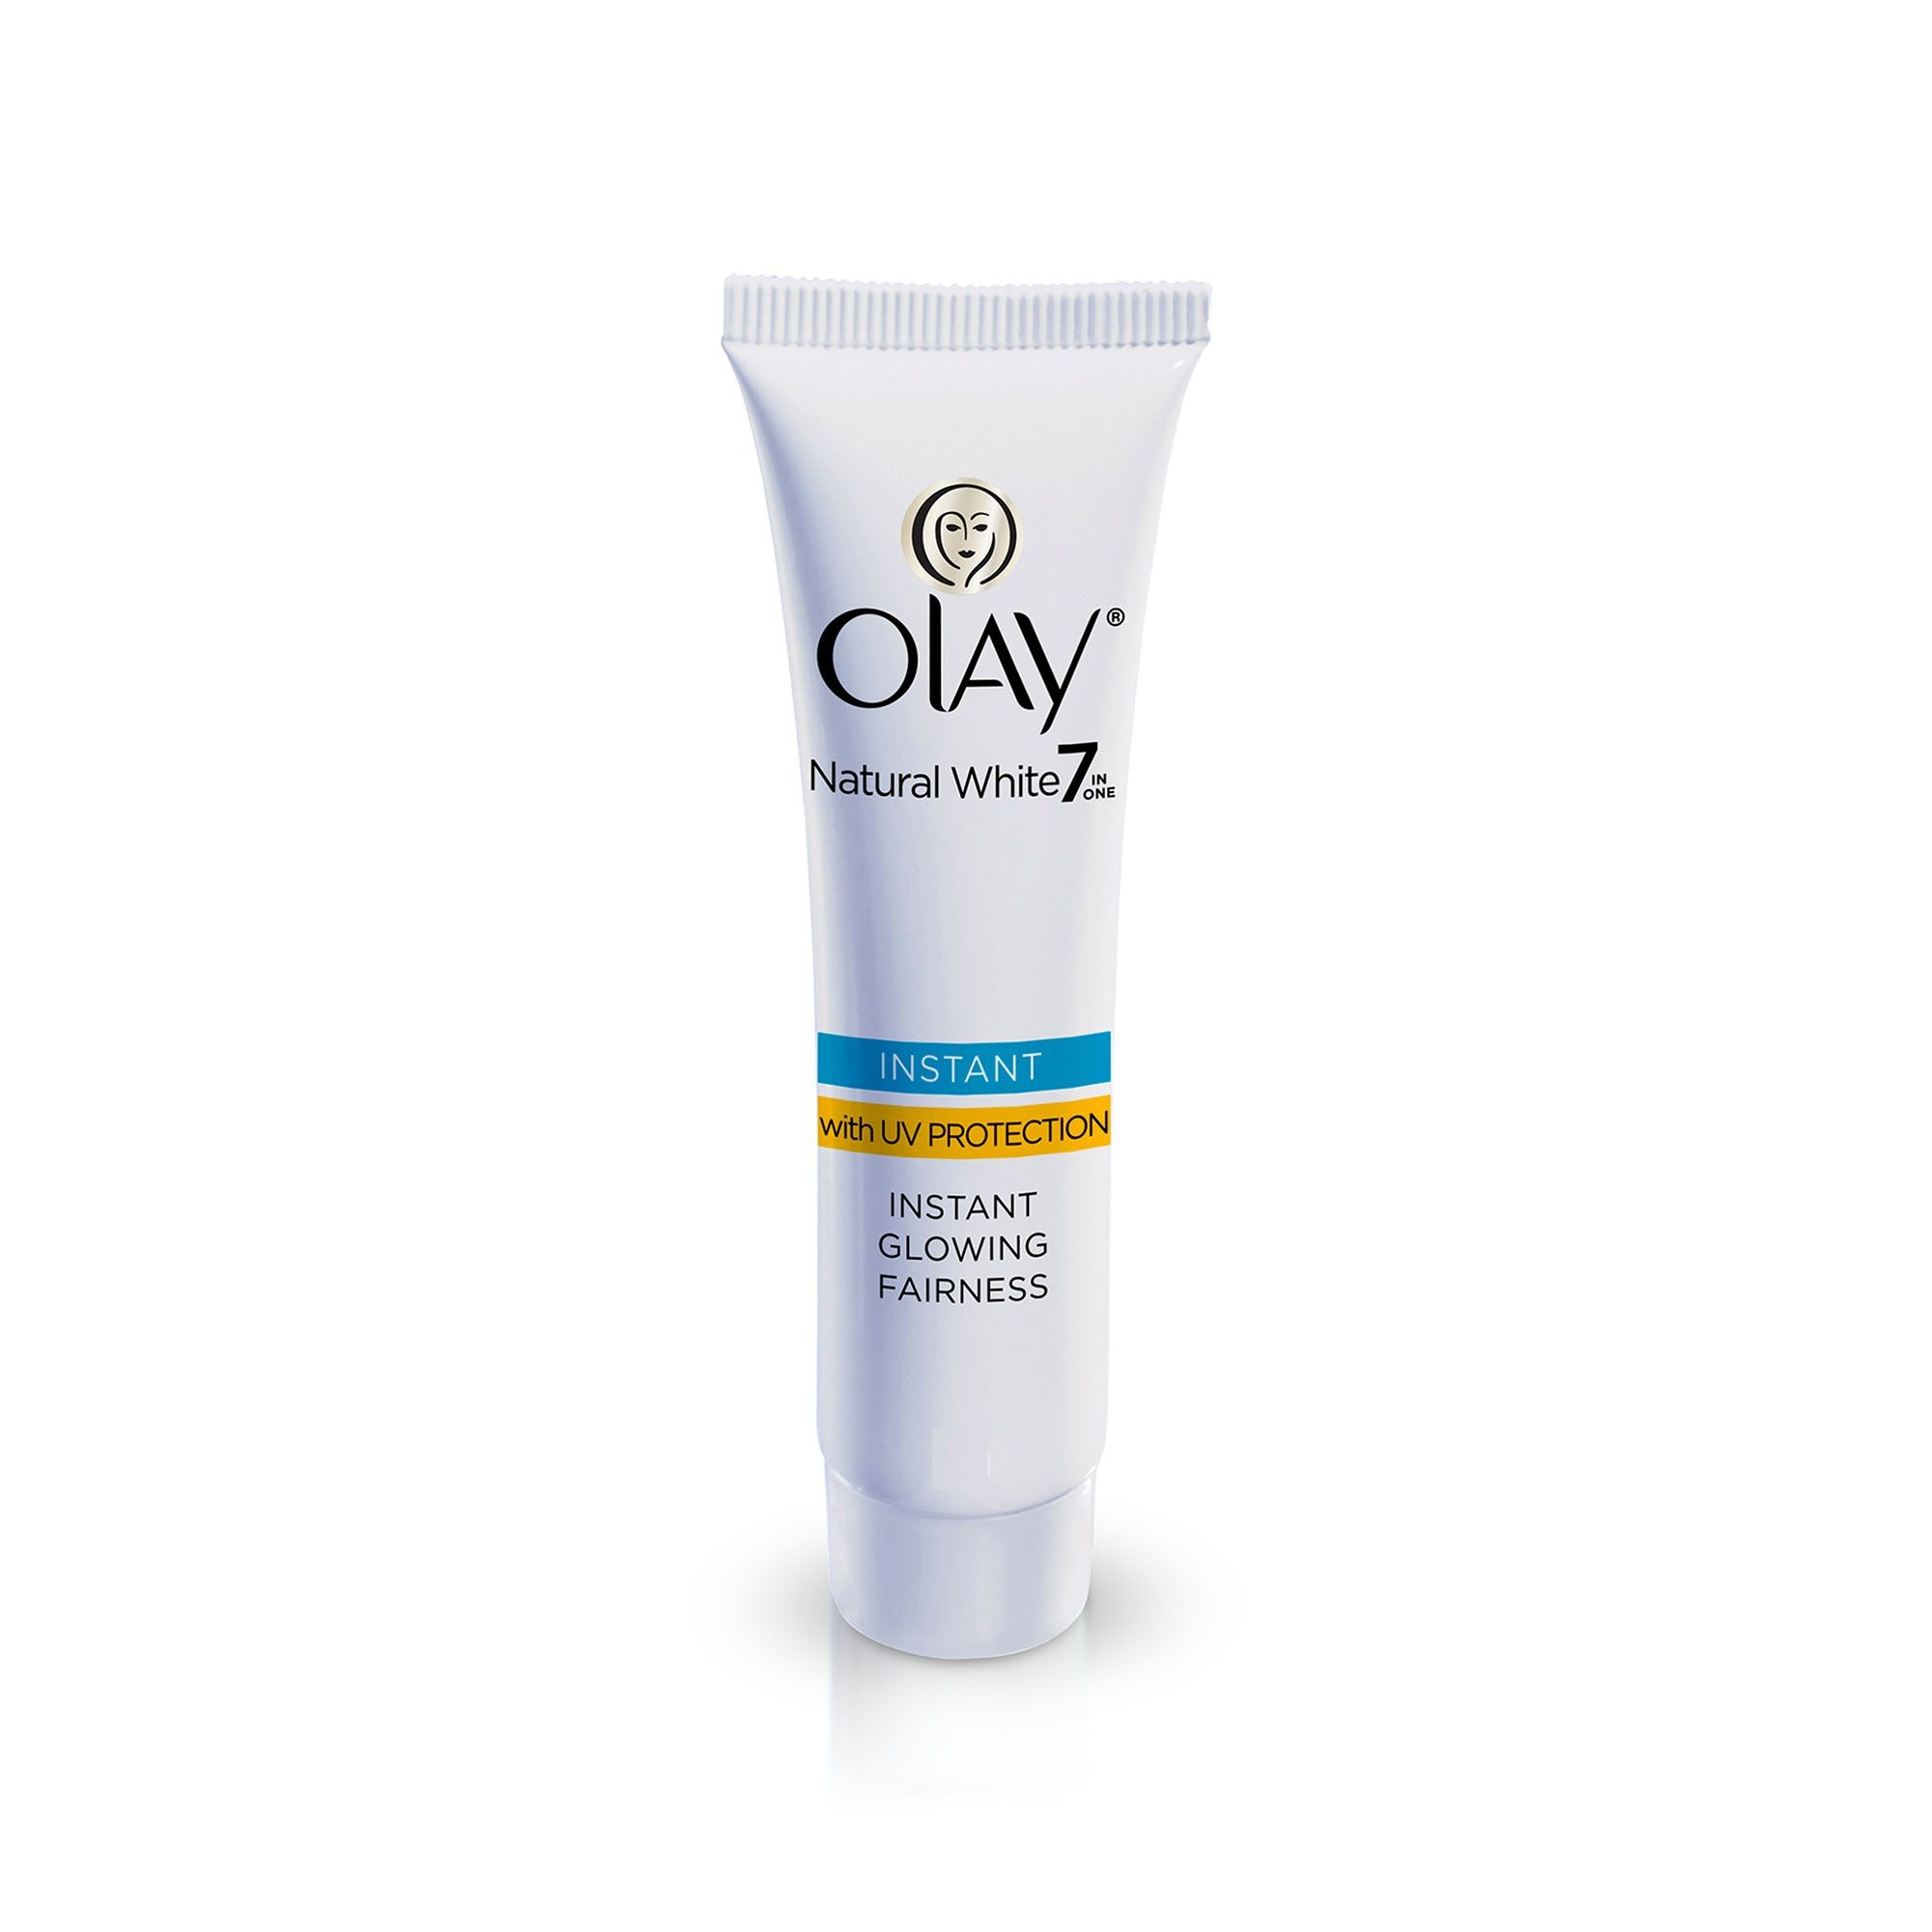 Olay Natural White Instant Glowing Fairness With Uv Protection 20gm